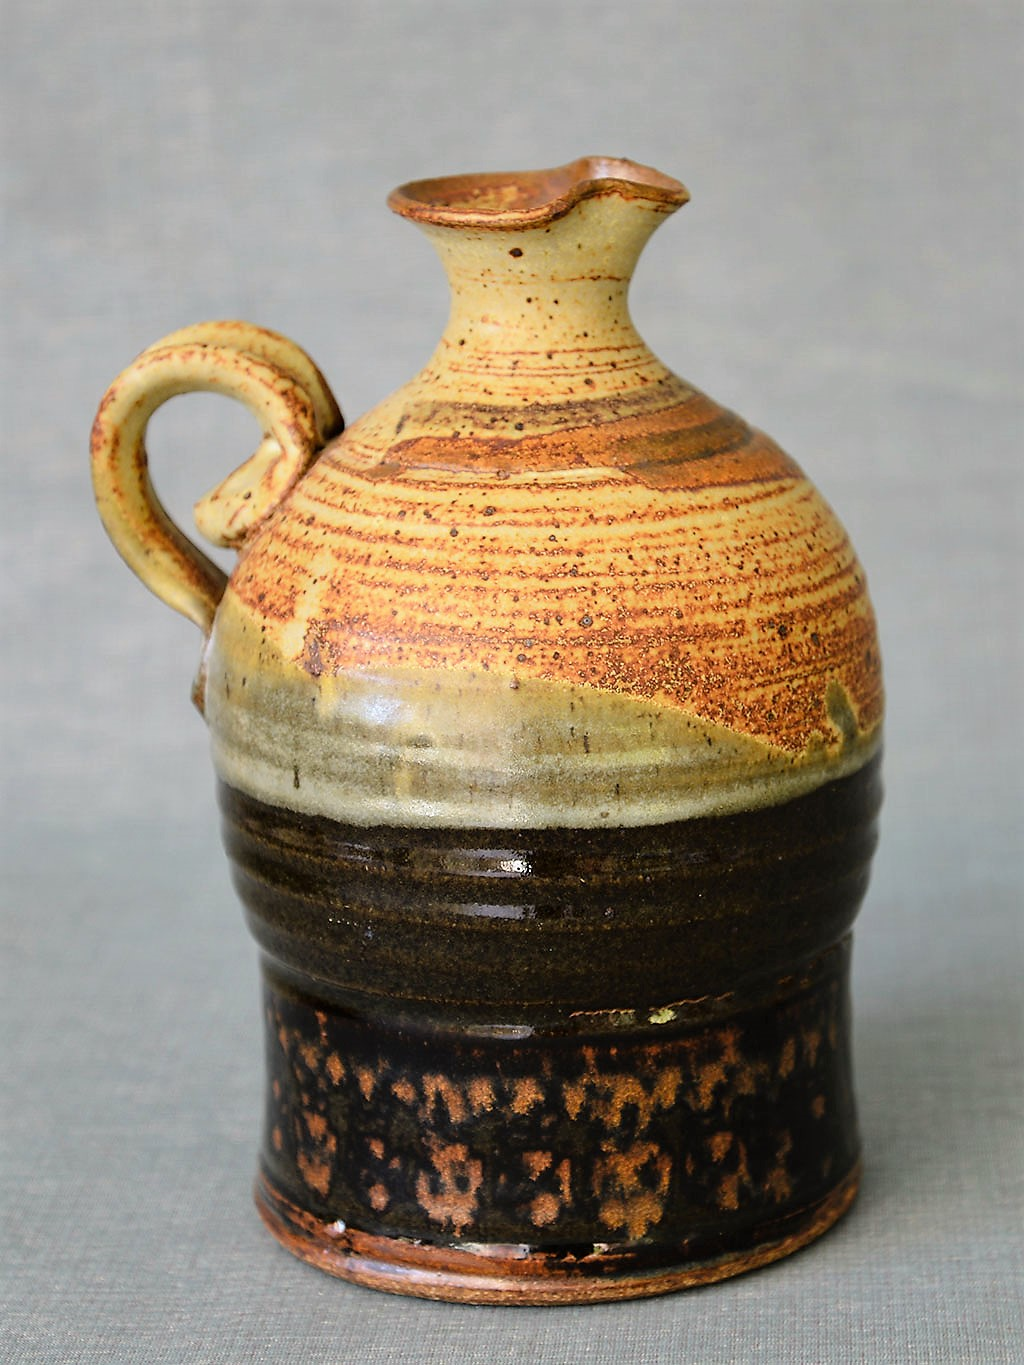 Donn Zver. (1973-83) Jug. 22.0 x 17.0 x 14.4 cm. Thrown stoneware, glaze with stamped design. Collection: Art Gallery of Burlngton.